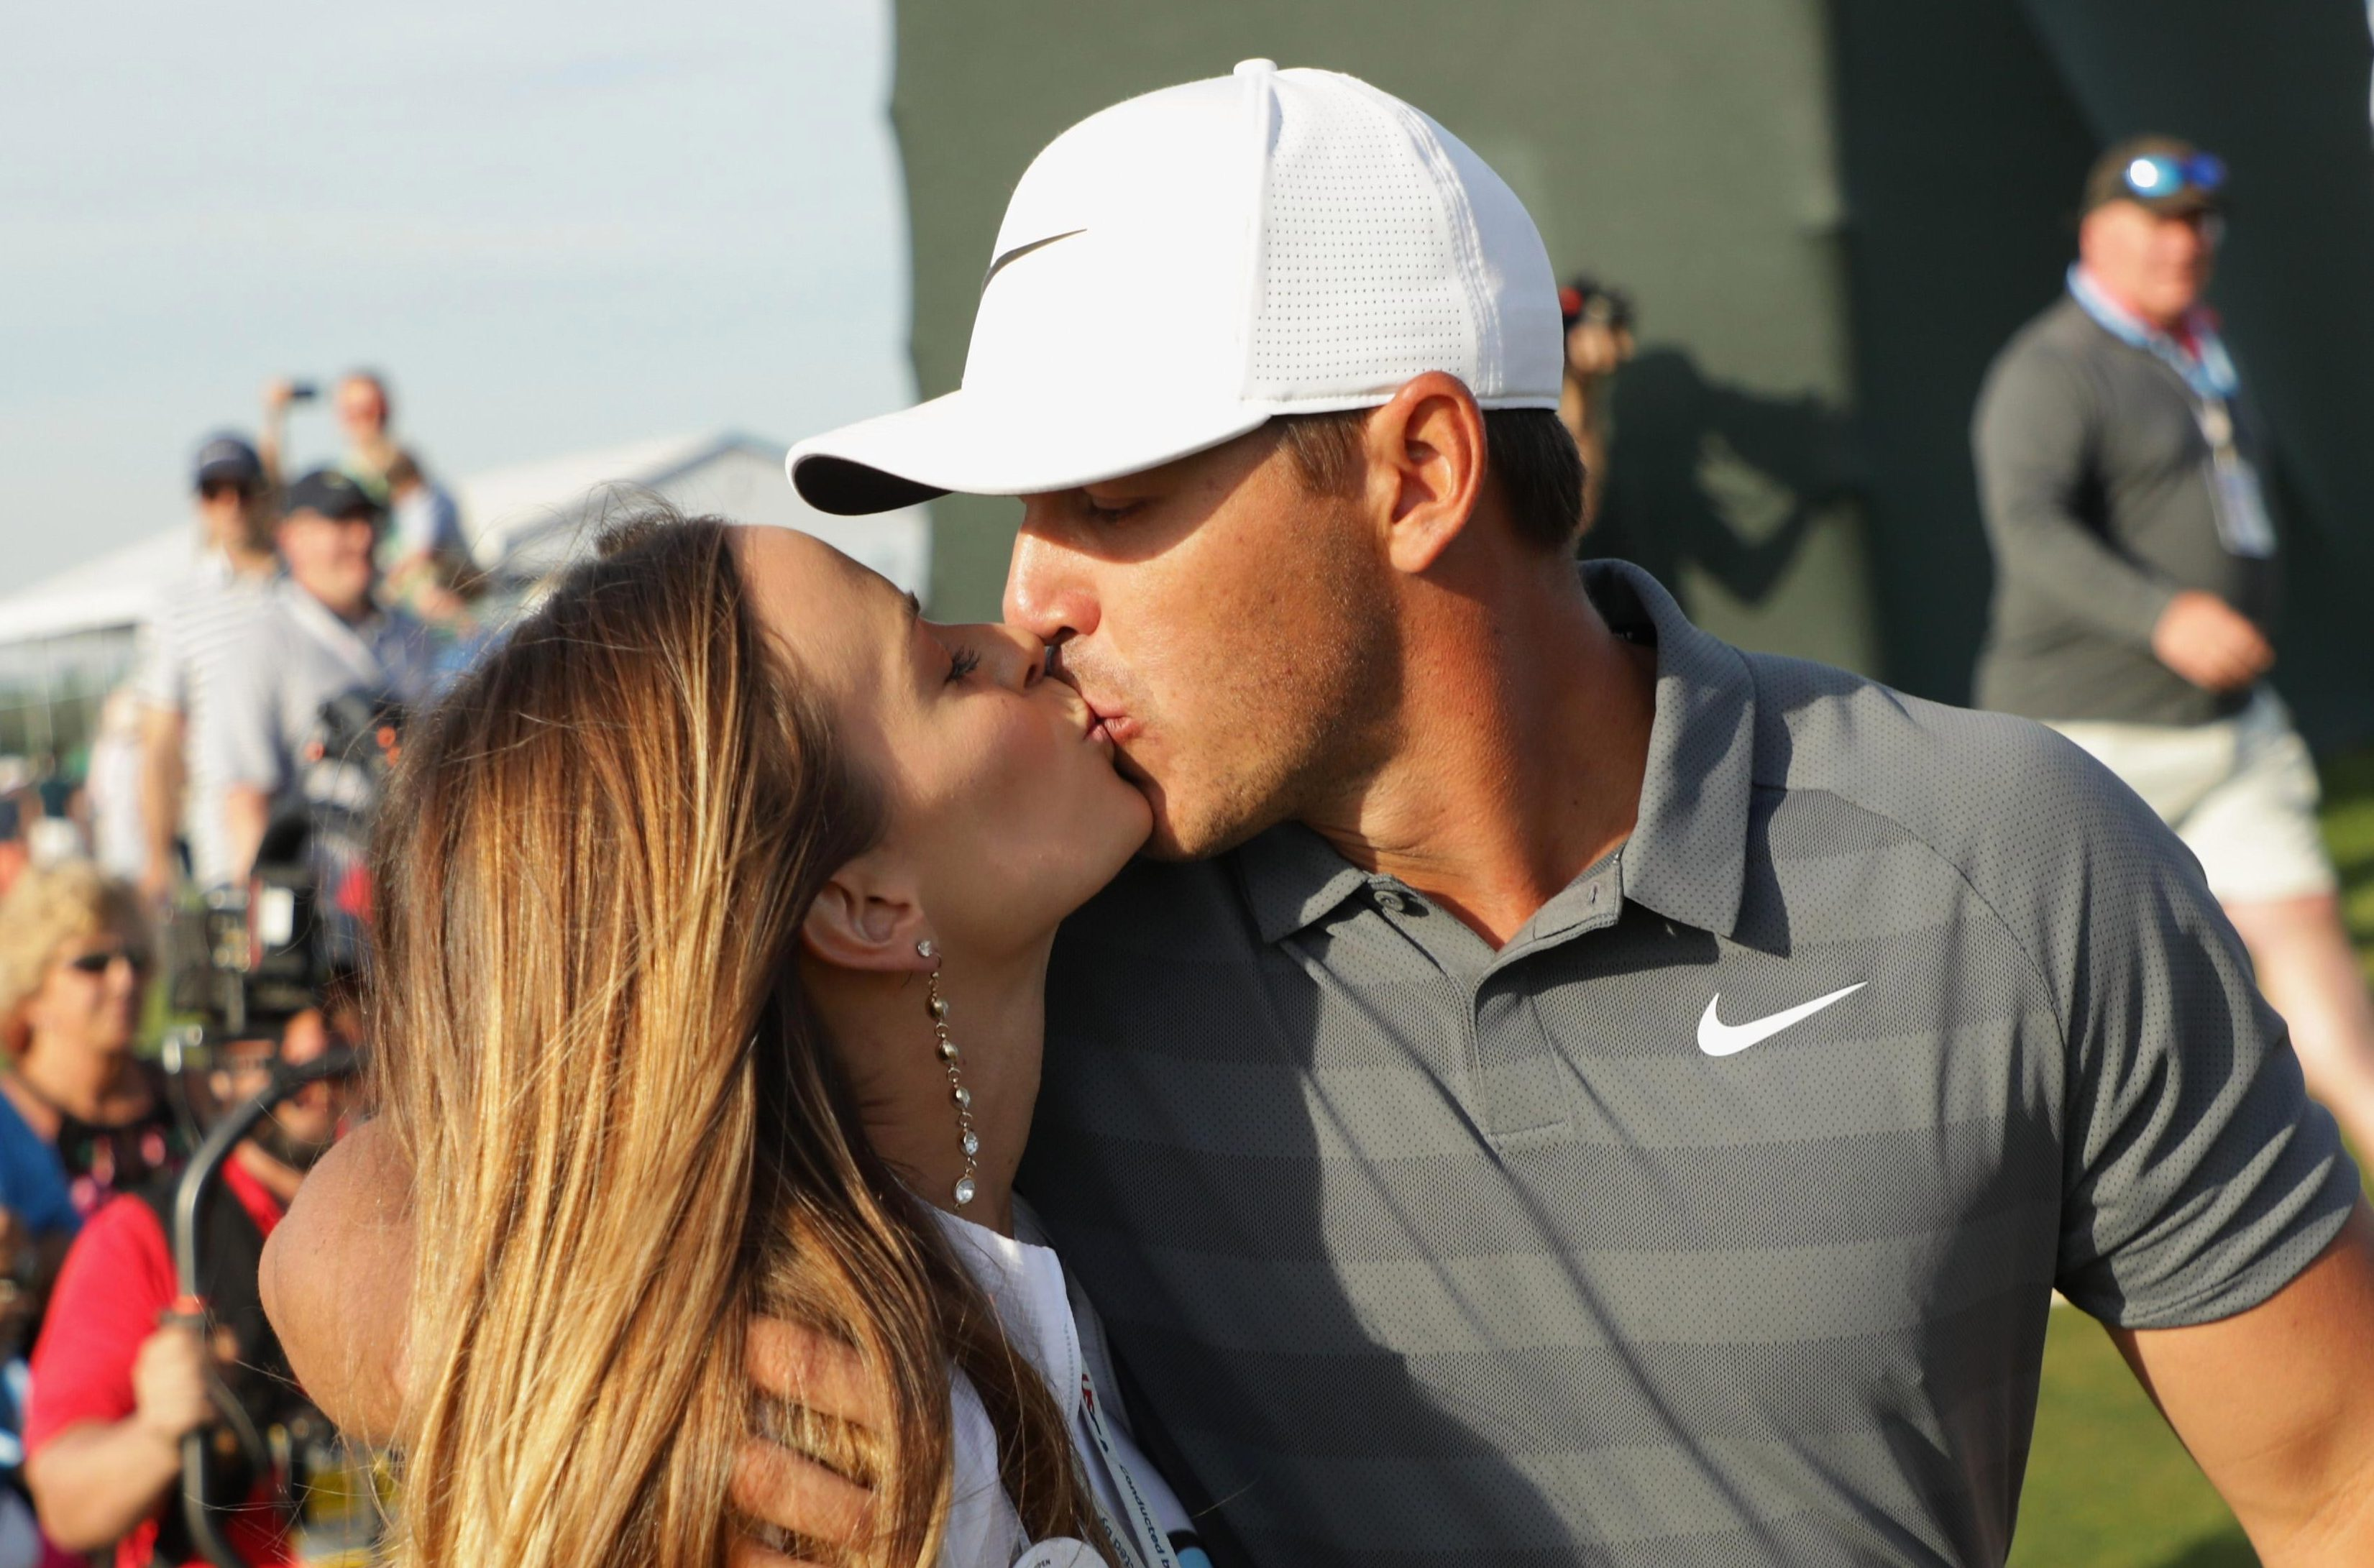 Brooks Koepka celebrates his victory with a kiss from girlfriend Jena Sims